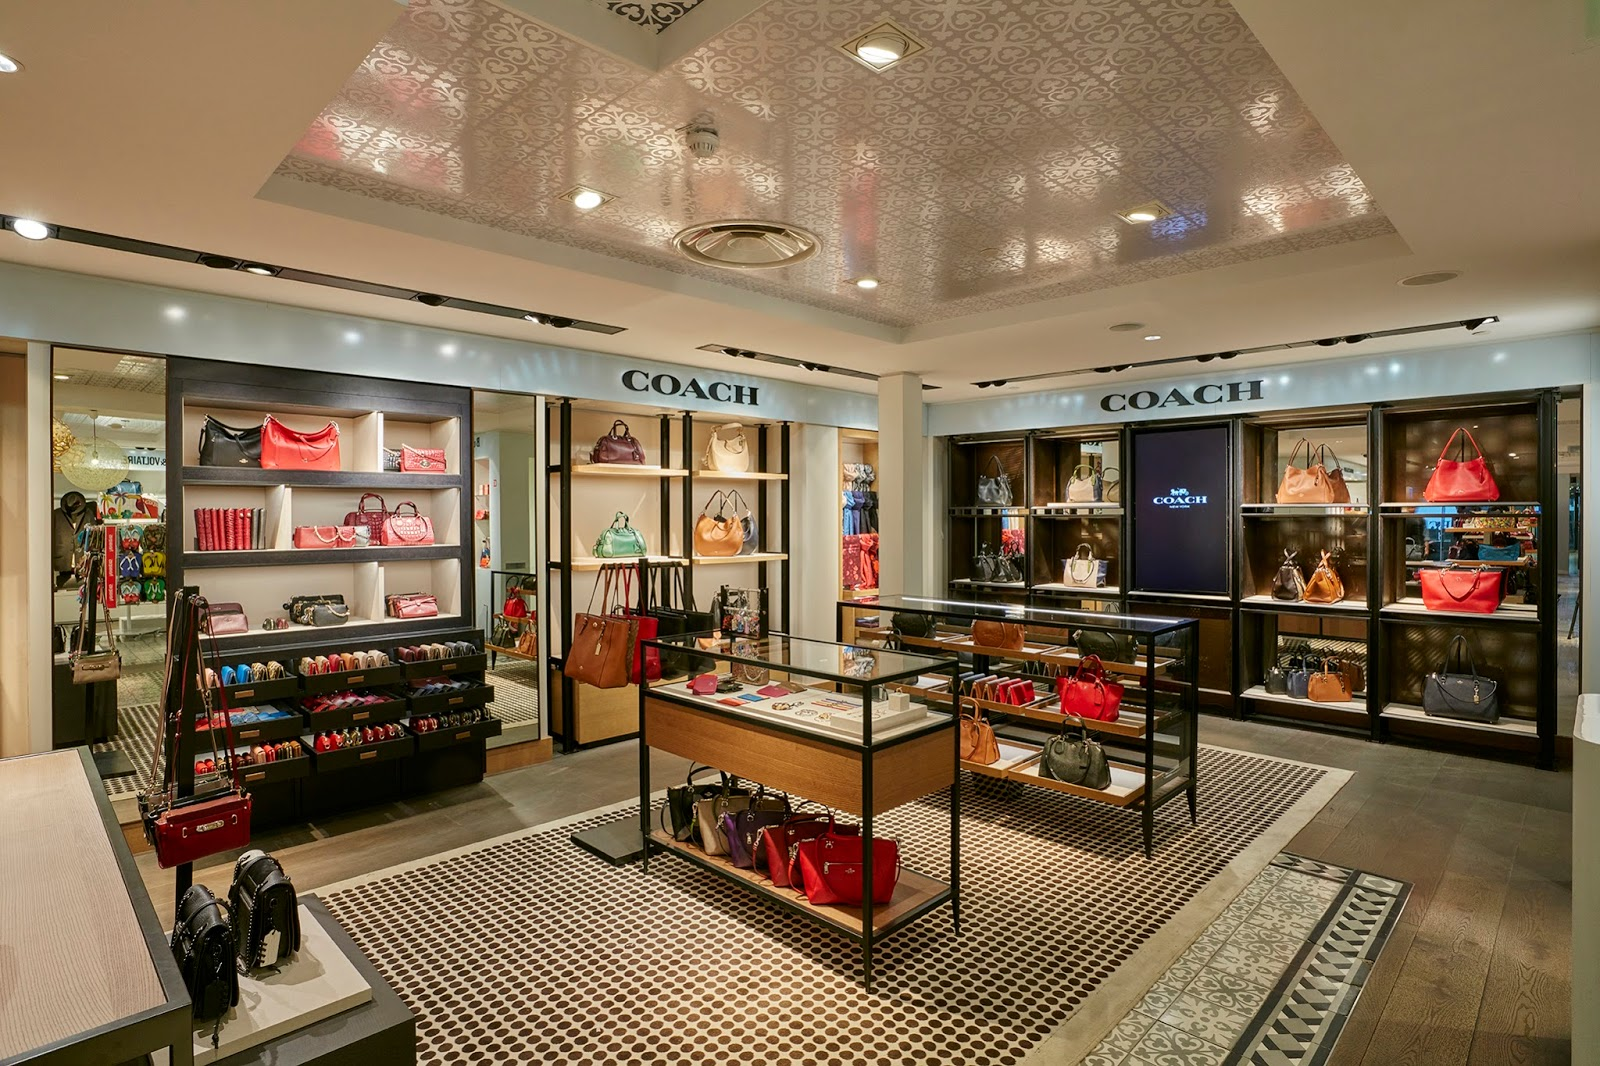 essential communications coach opens men s and women s shops in charles de gaulle airport. Black Bedroom Furniture Sets. Home Design Ideas